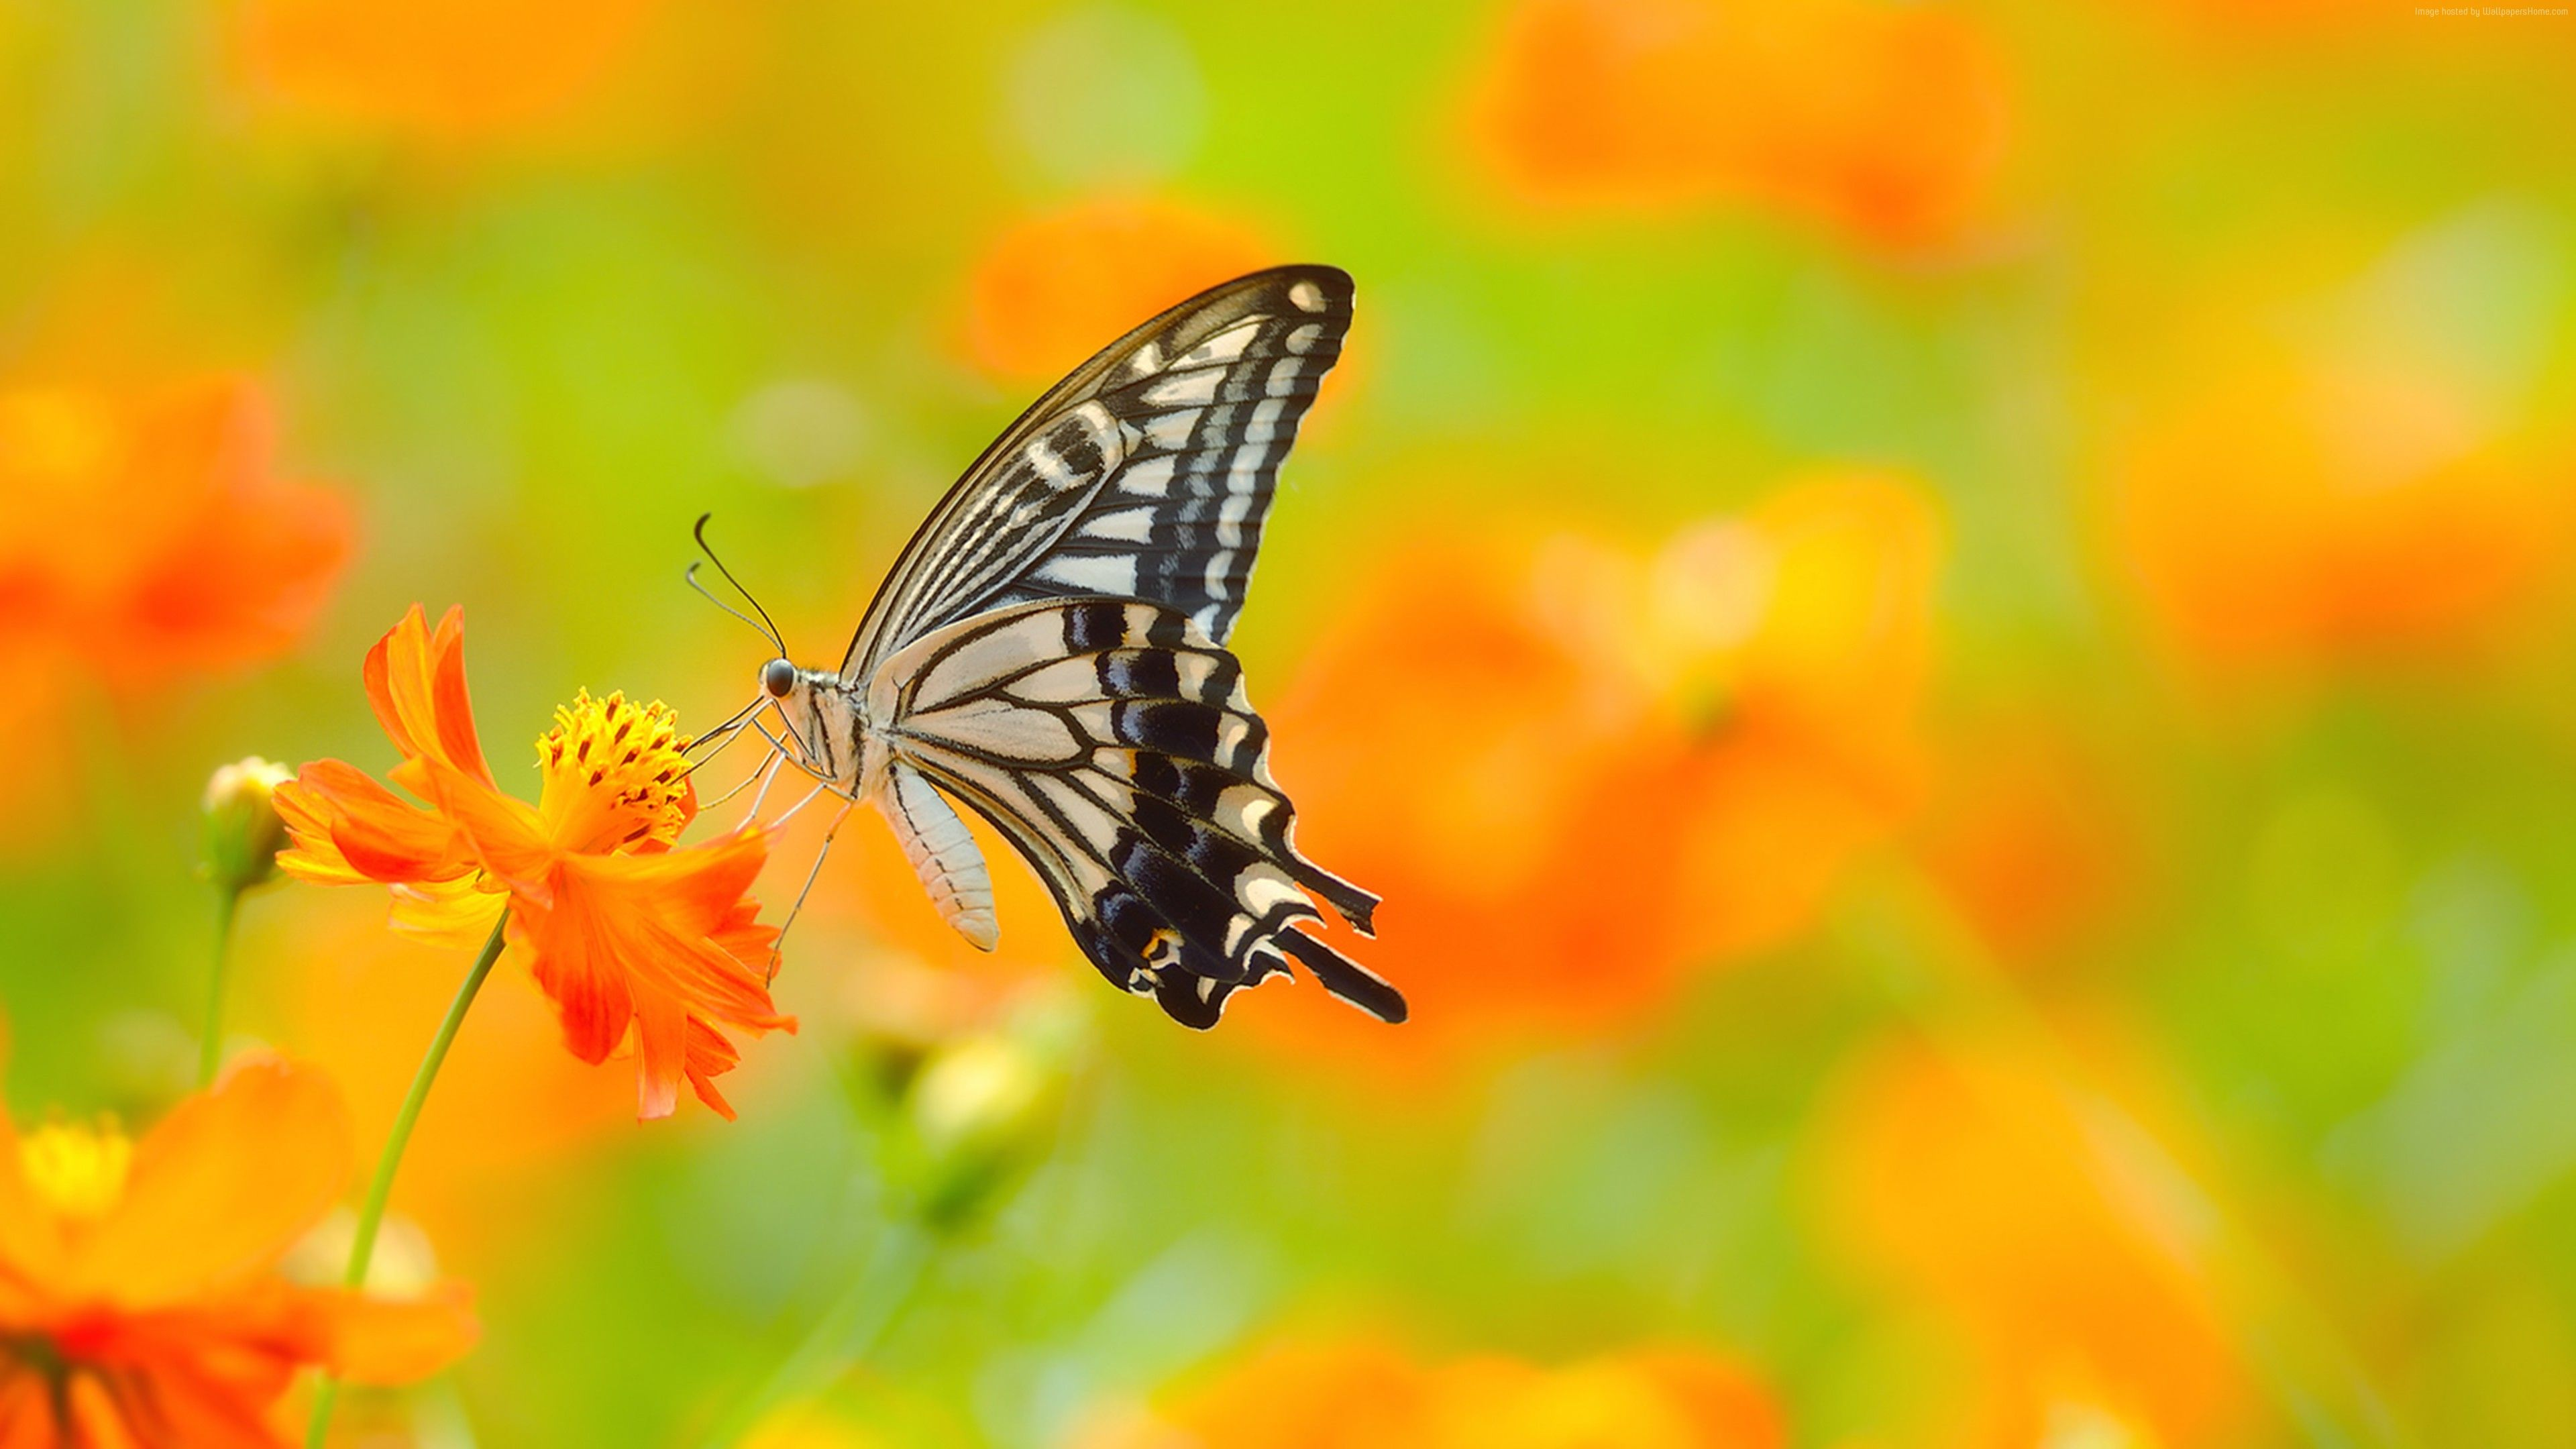 Wallpaper Butterfly 5k 4k Wallpaper Colorful Flowers Yellow Insects Animals With Images Butterfly Wallpaper Beautiful Butterflies Butterfly Pictures